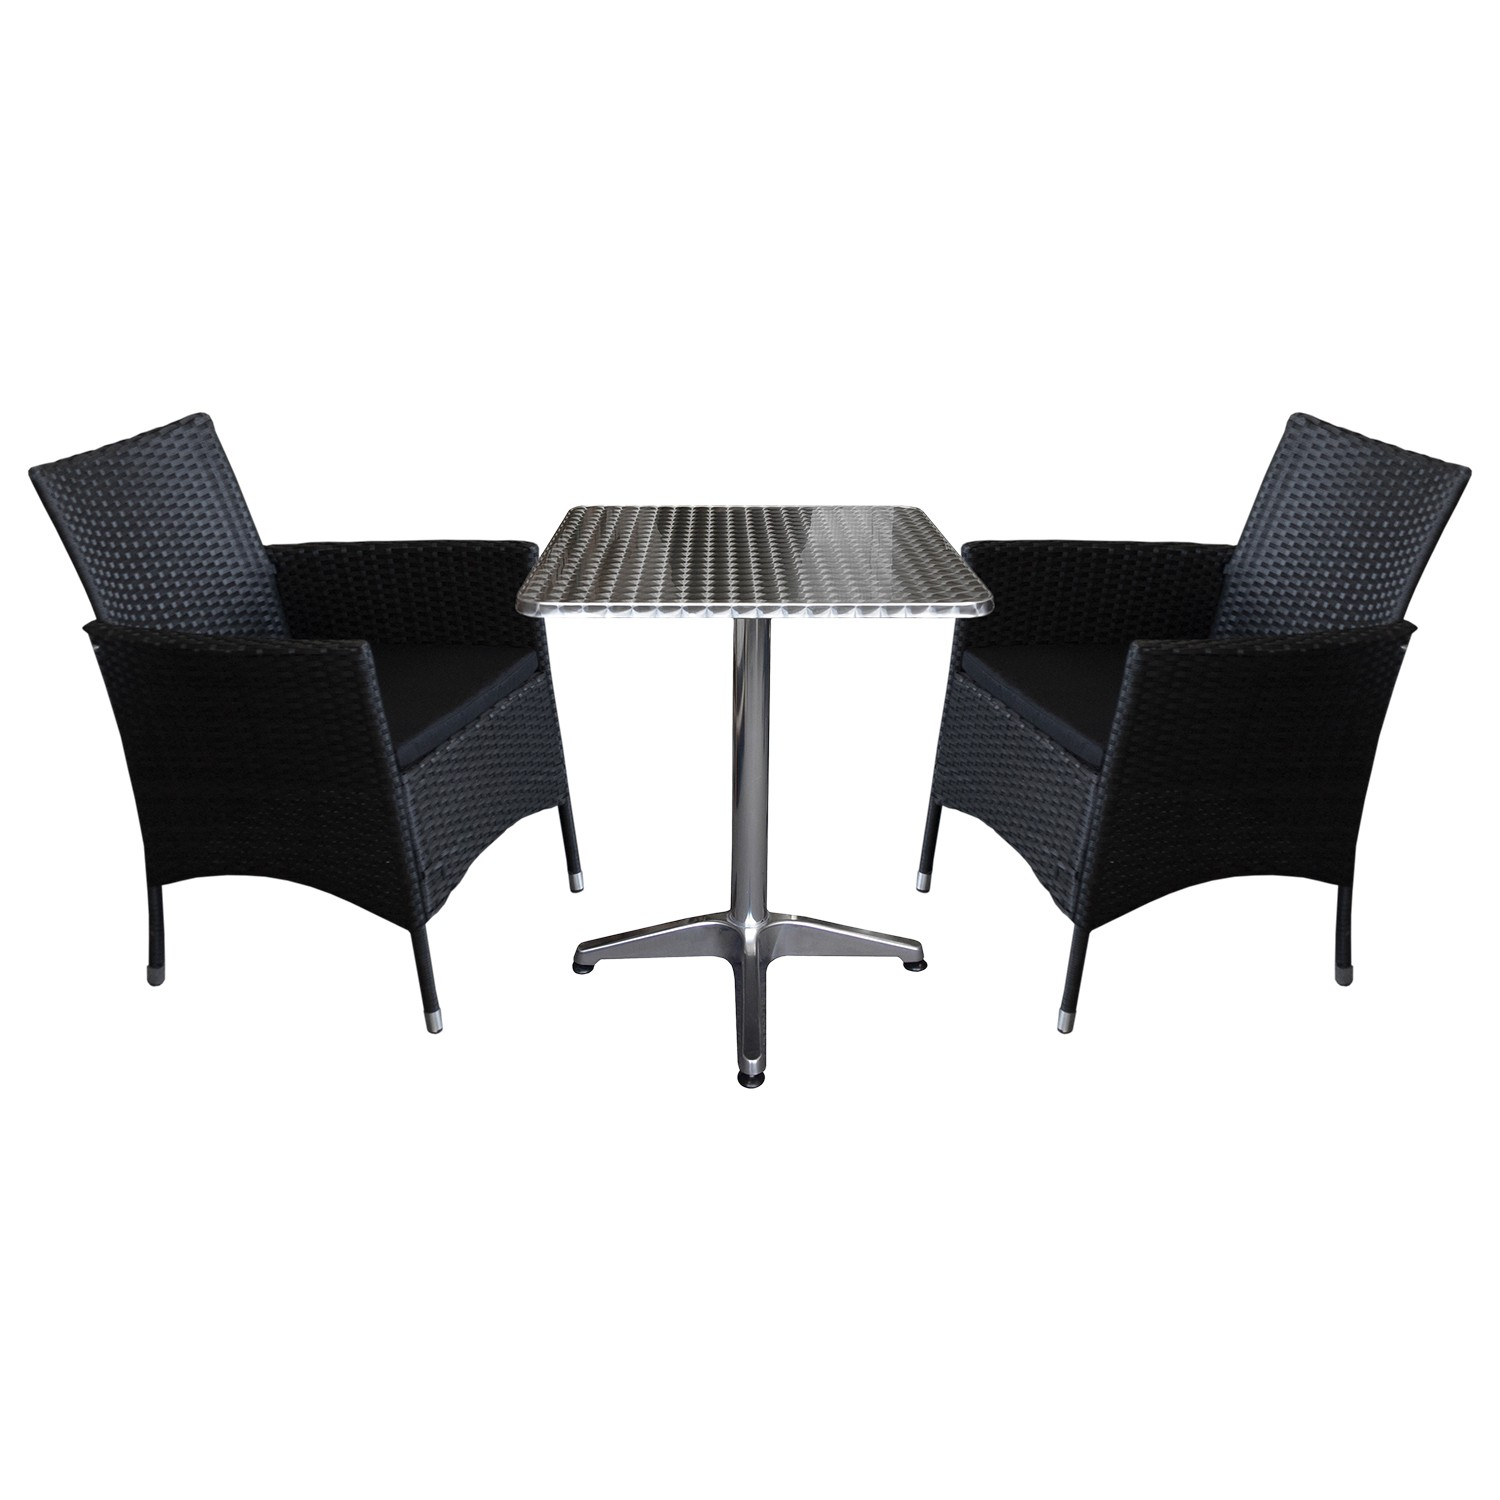 balkonm bel set sitzgruppe garnitur aluminium tisch 60x60cm 2x rattansessel ebay. Black Bedroom Furniture Sets. Home Design Ideas